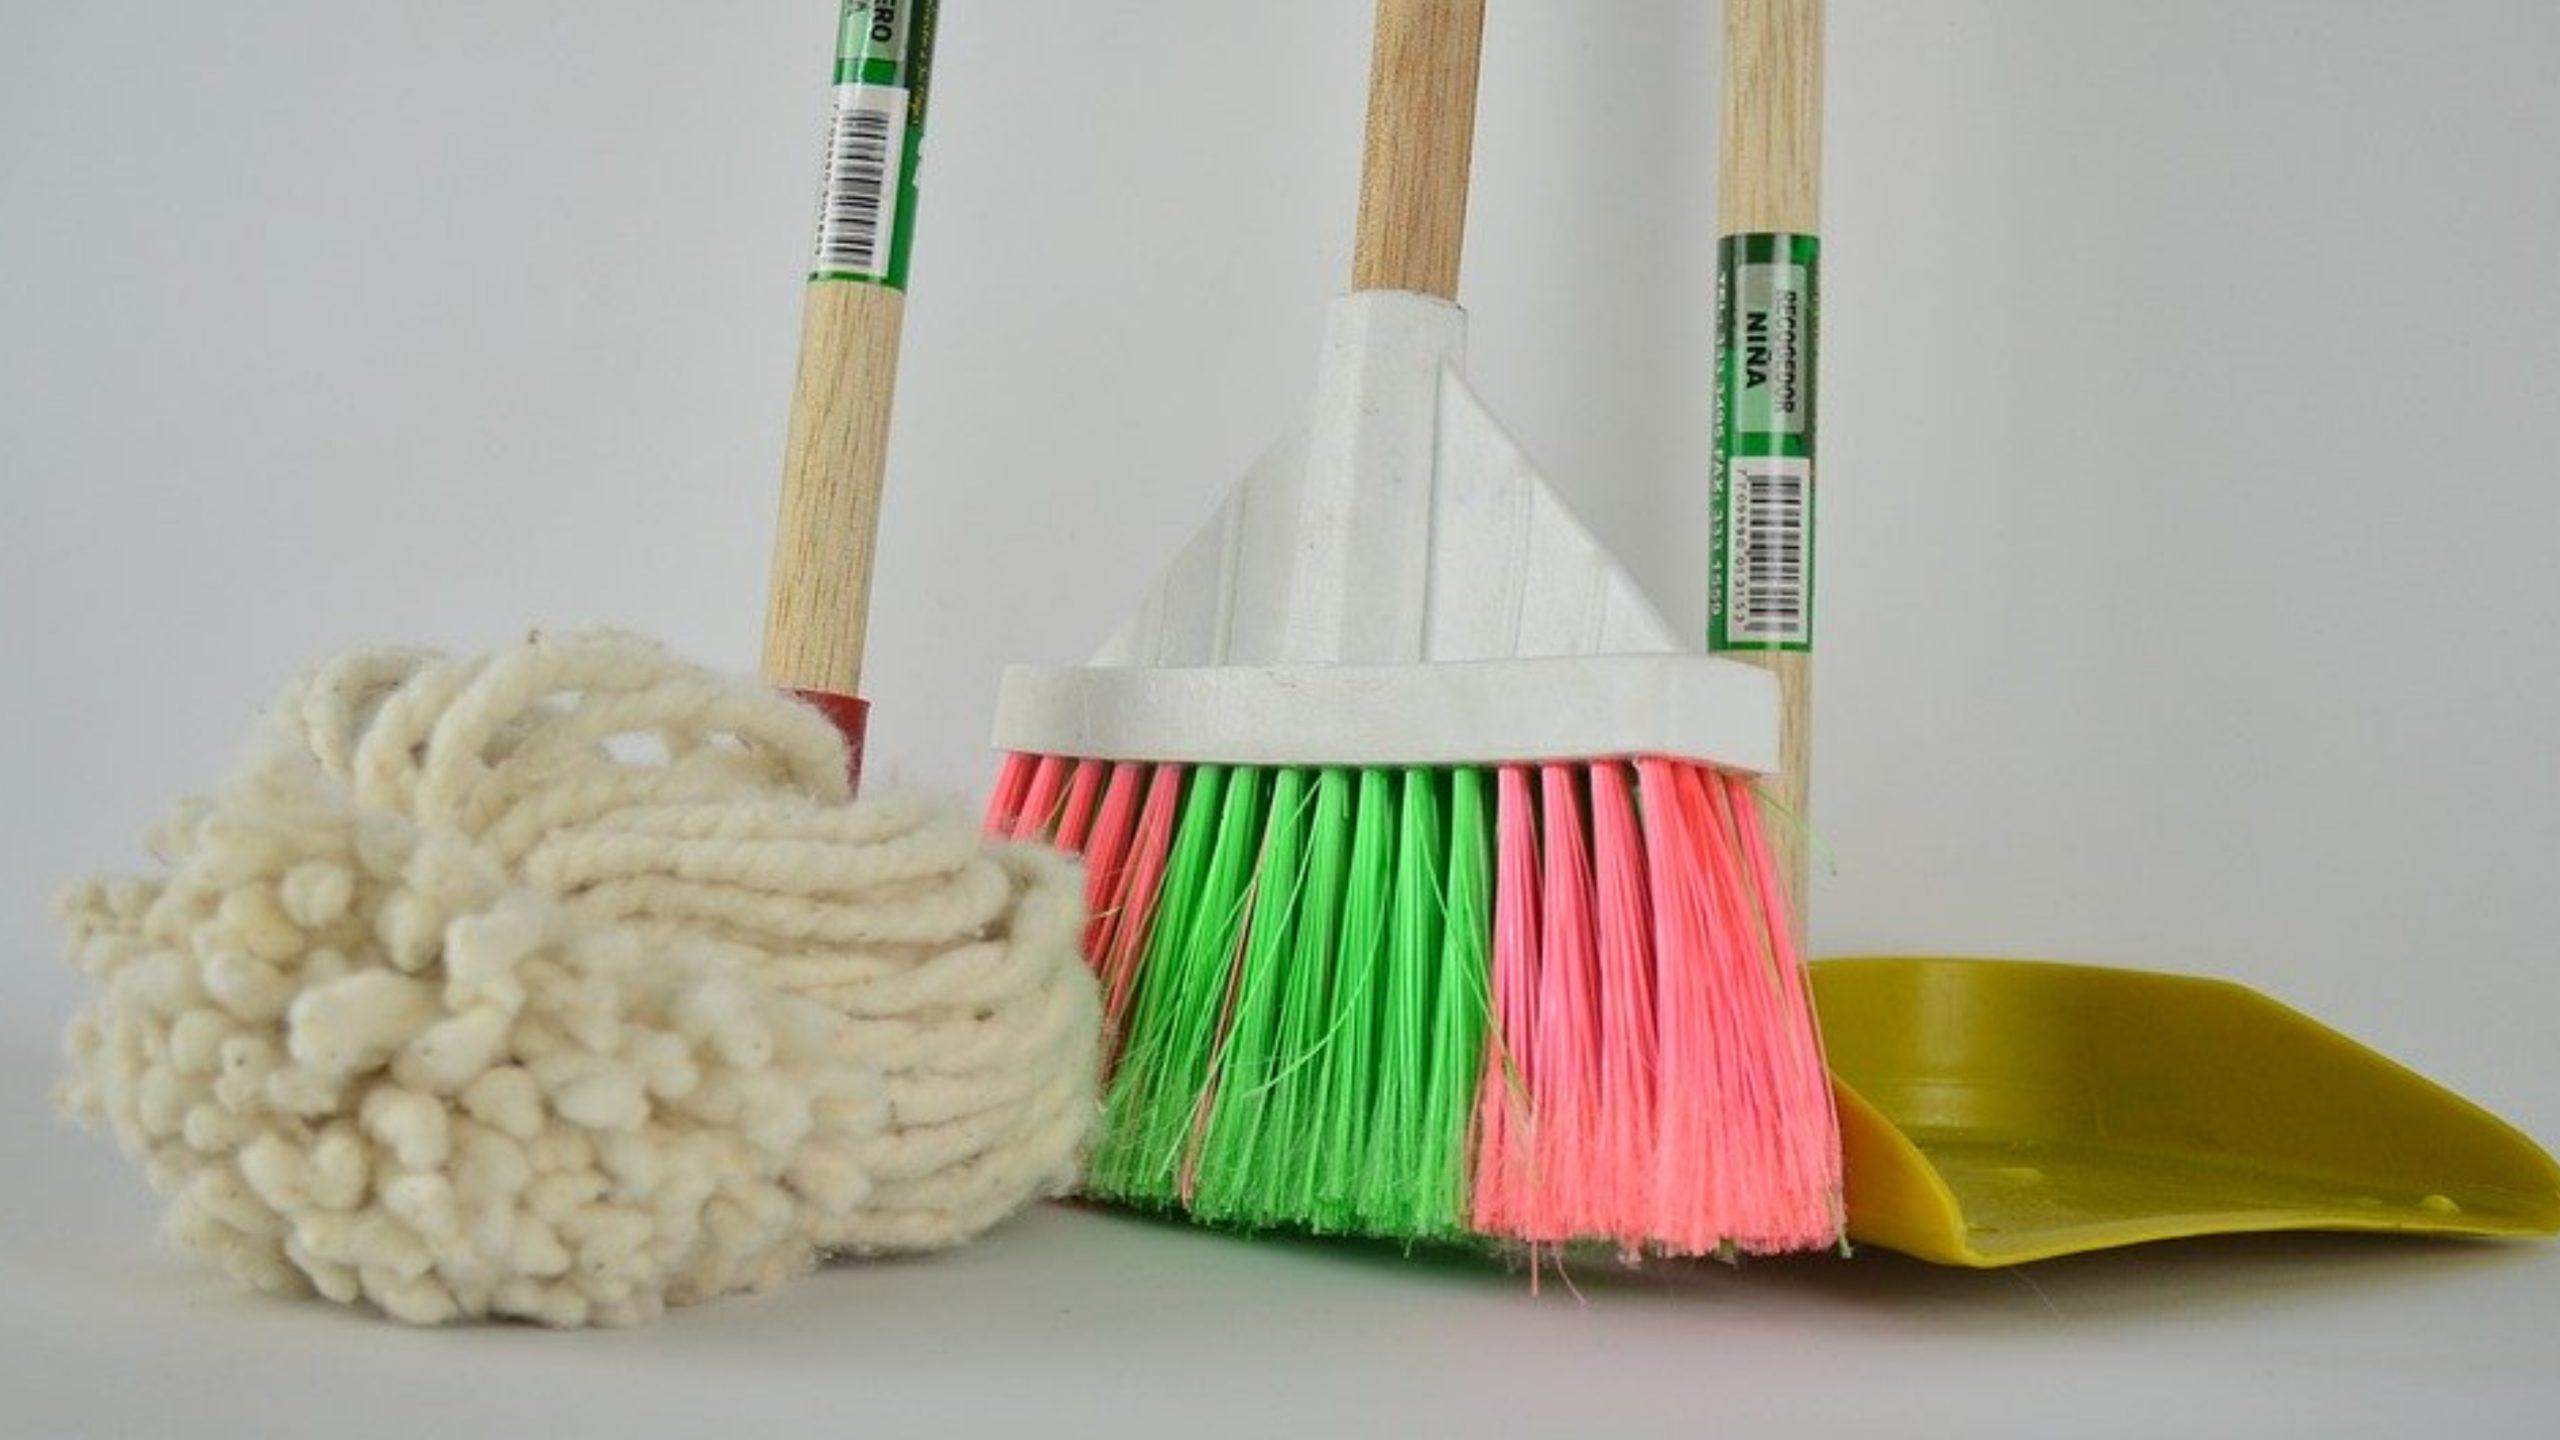 Do cleaning routines work